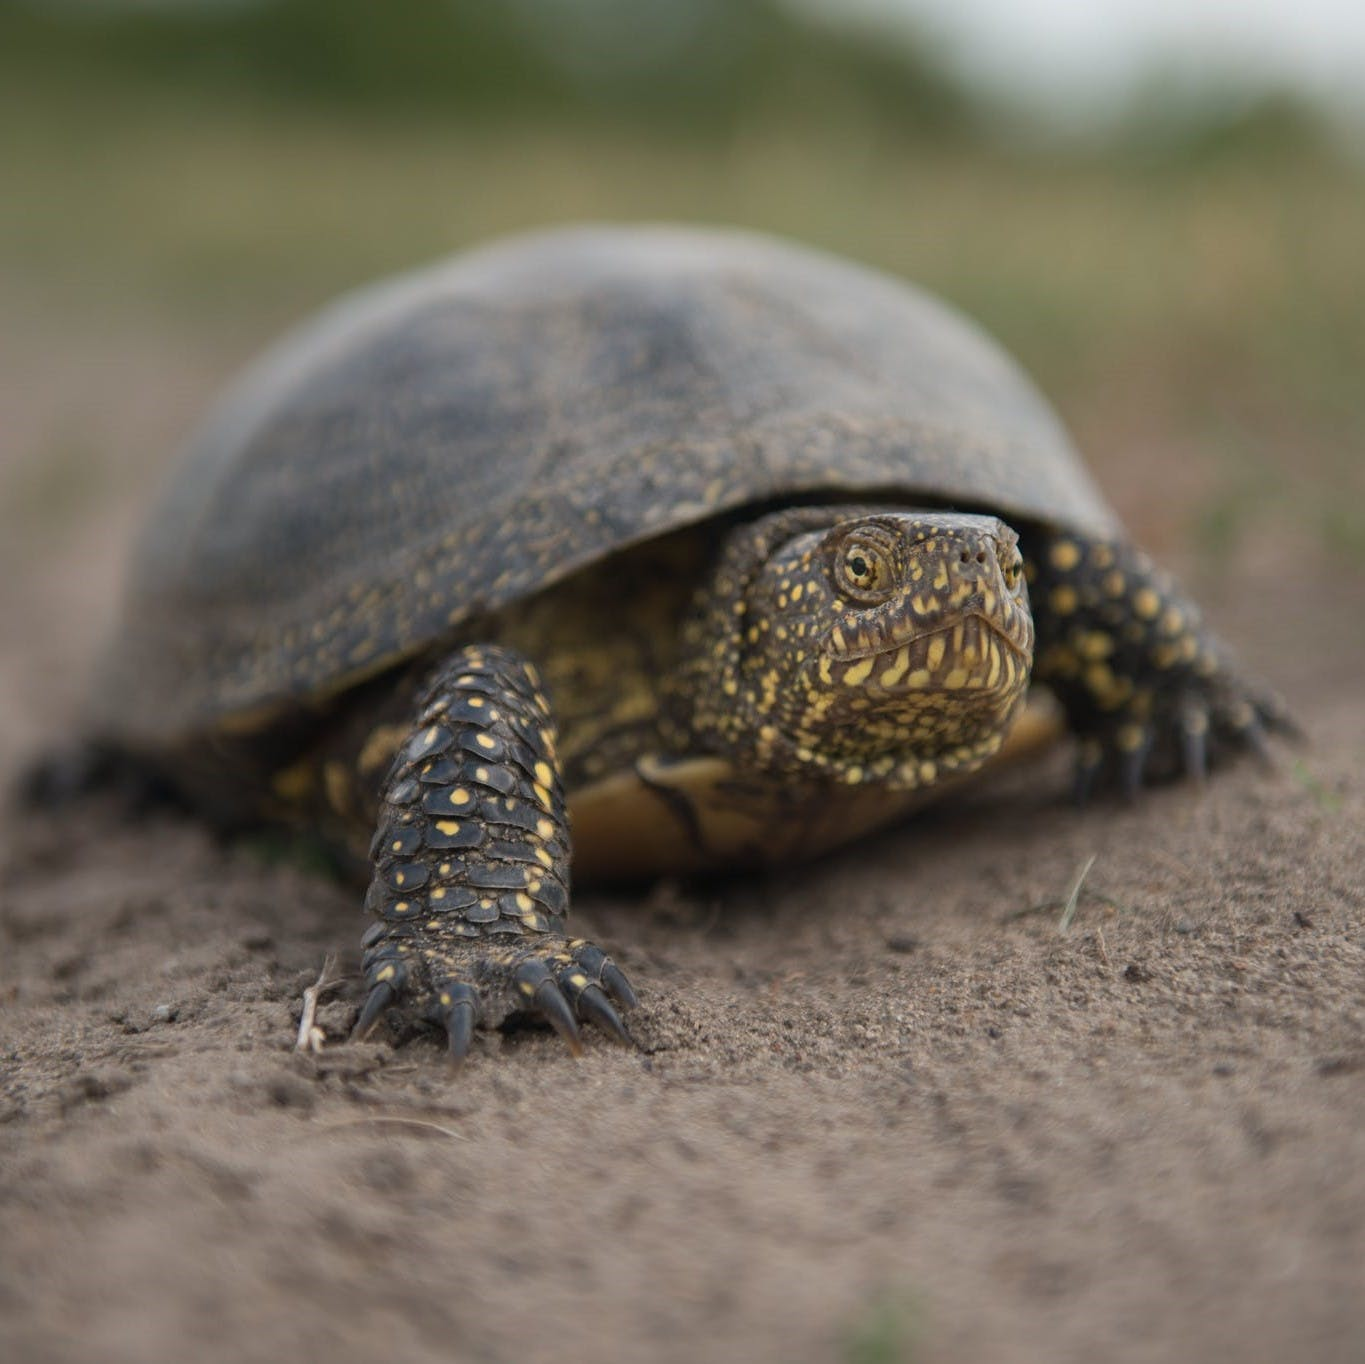 A European pond turtle walking over the sandy substrate of its wetland habitat in Slovakia. Mossy Earth members are helping to protect it through one of our rewilding projects.